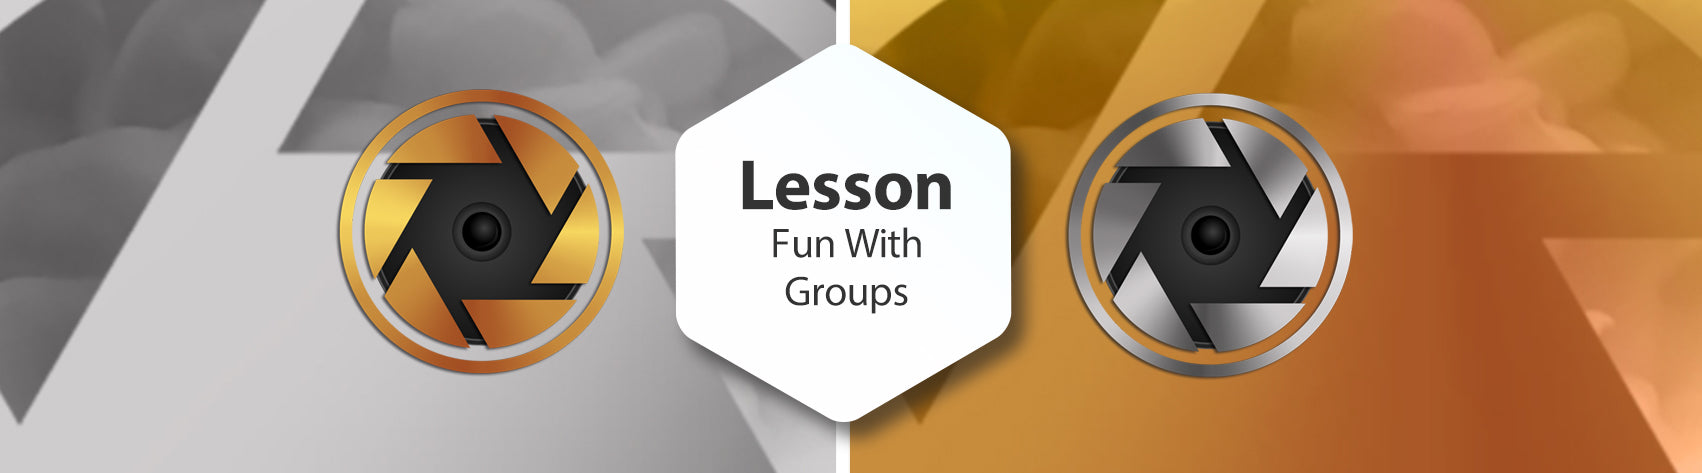 Lesson - Fun with Groups